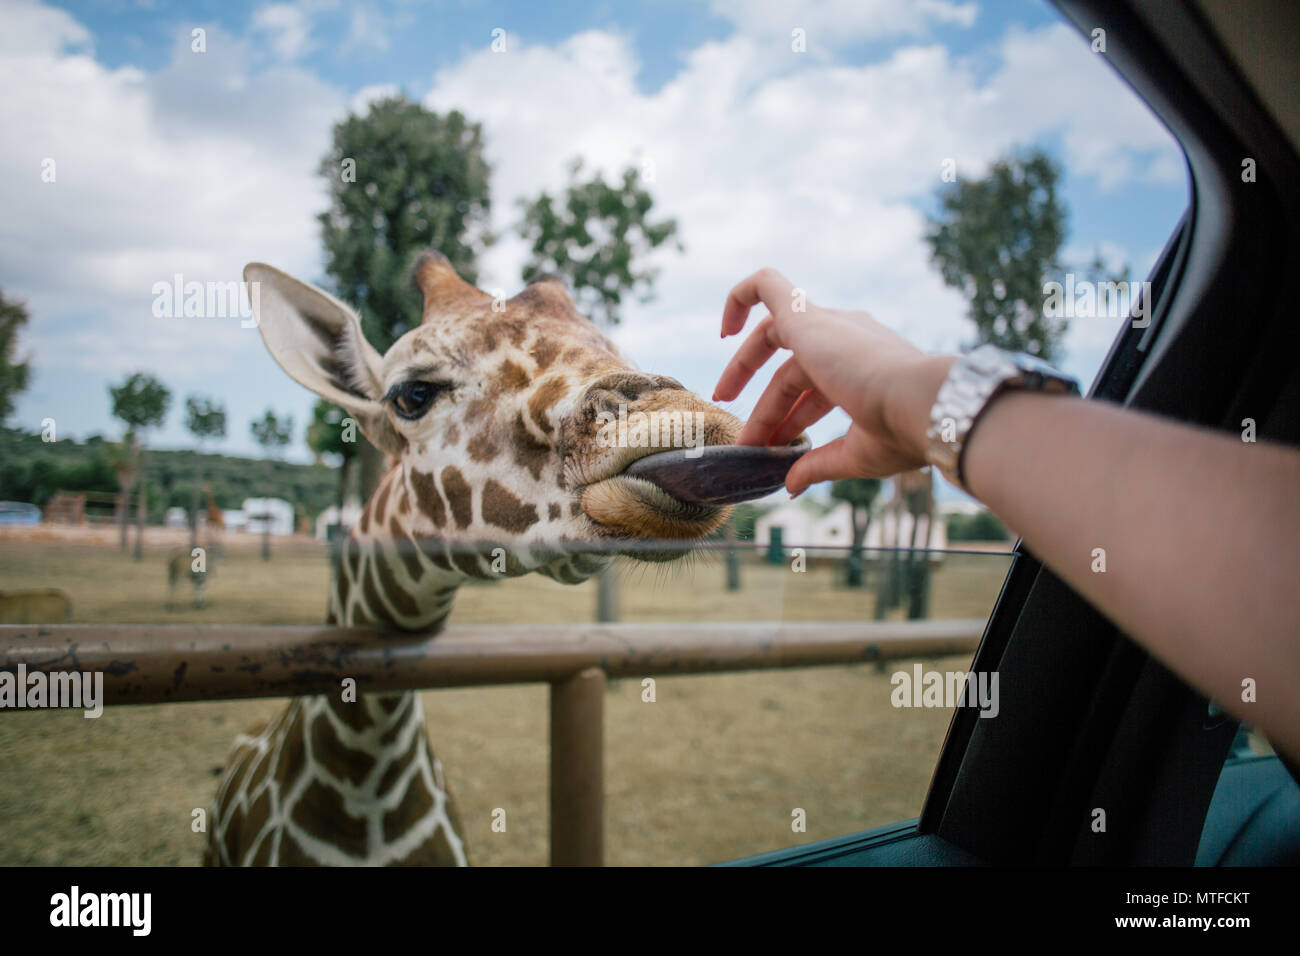 Girafe et main humaine en Pouilles Italie zoo safari Fasano Photo Stock